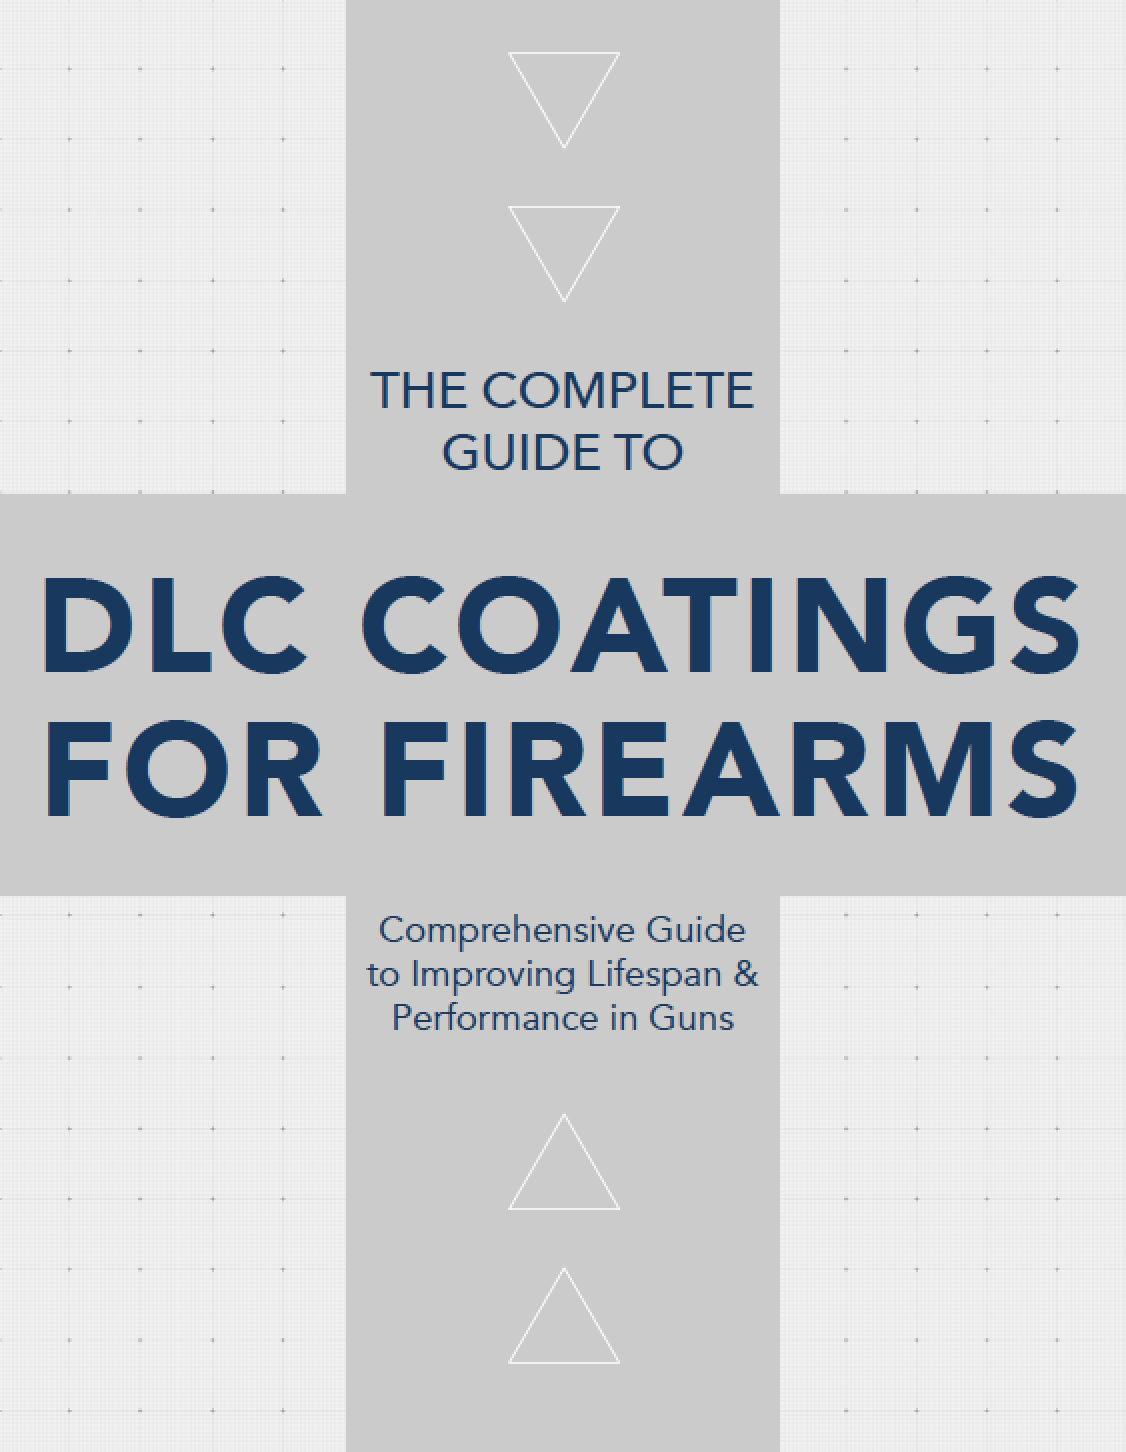 the-complete-guide-to-dlc-coatings-for-firearms-ihc.png